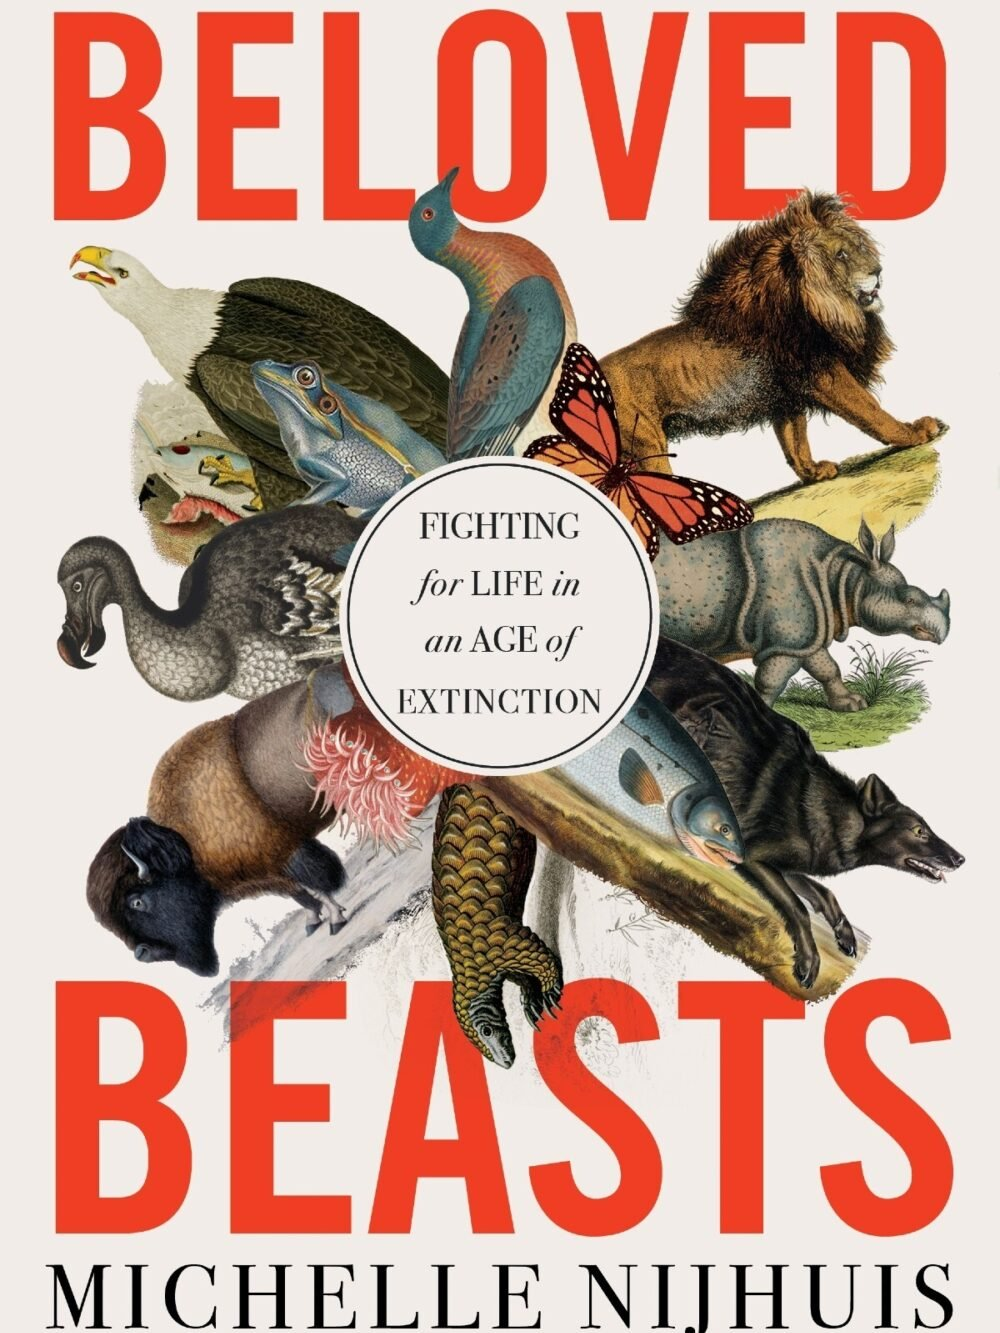 Book jacket showing a wide variety of threatened species, including a buffalo and a lion, among others.